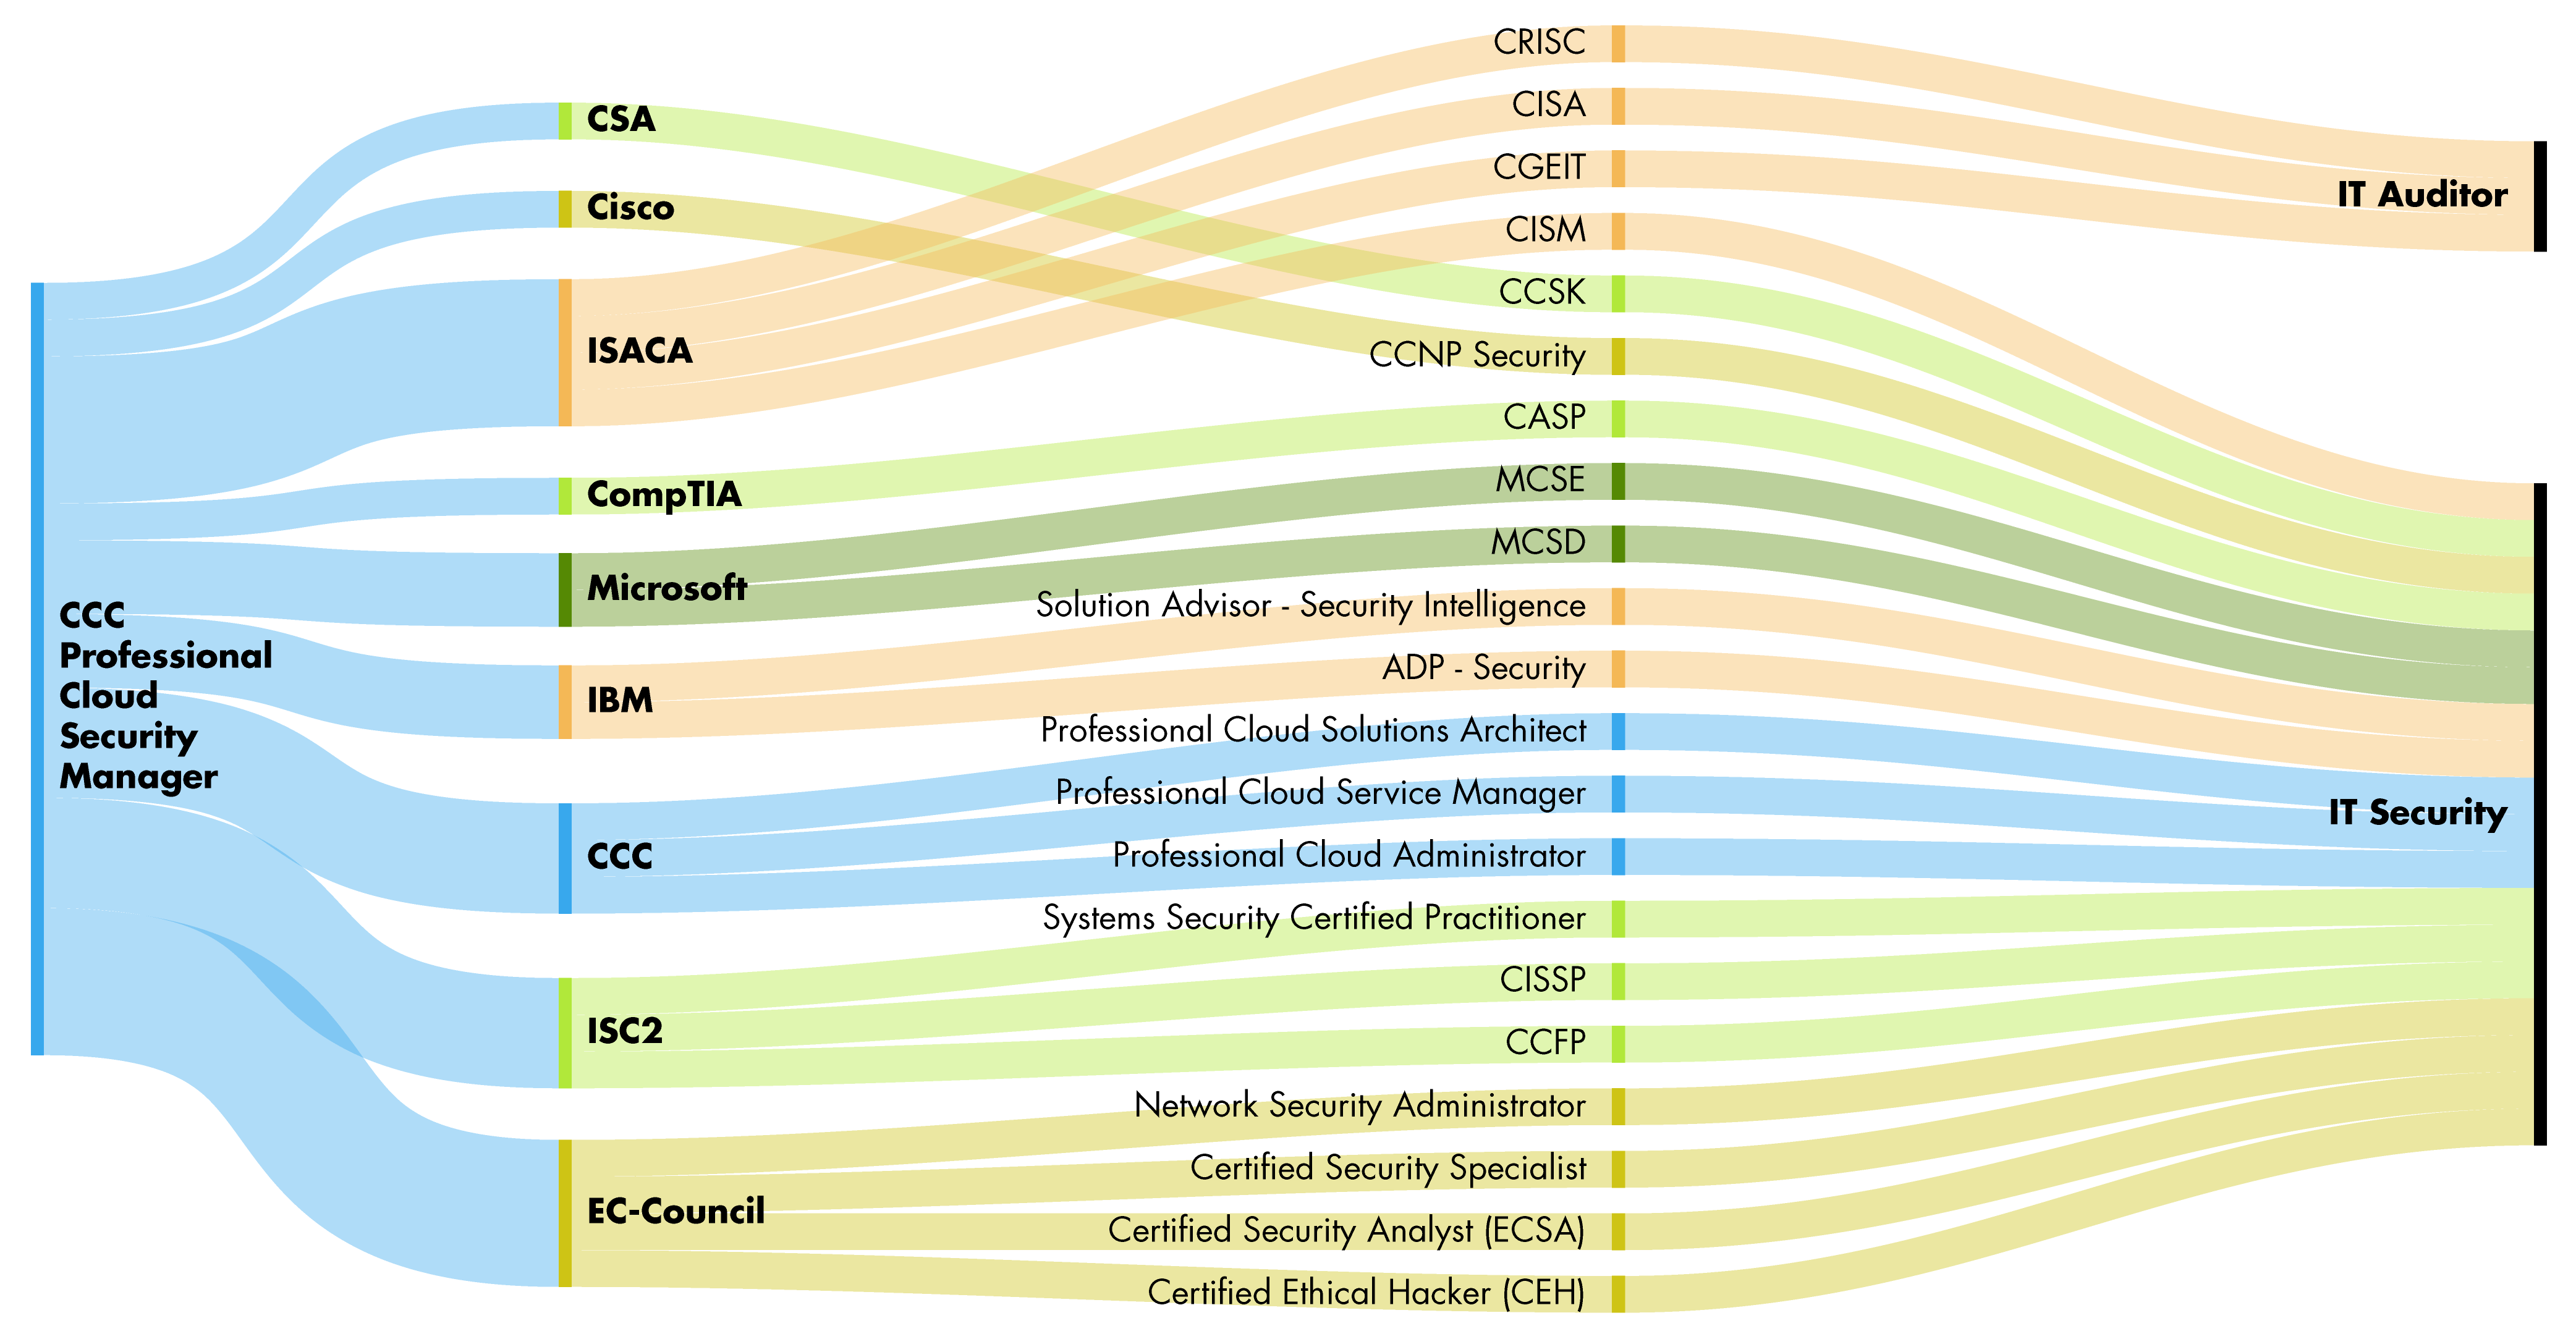 Professional Cloud Security Manager Cloud Credential Council